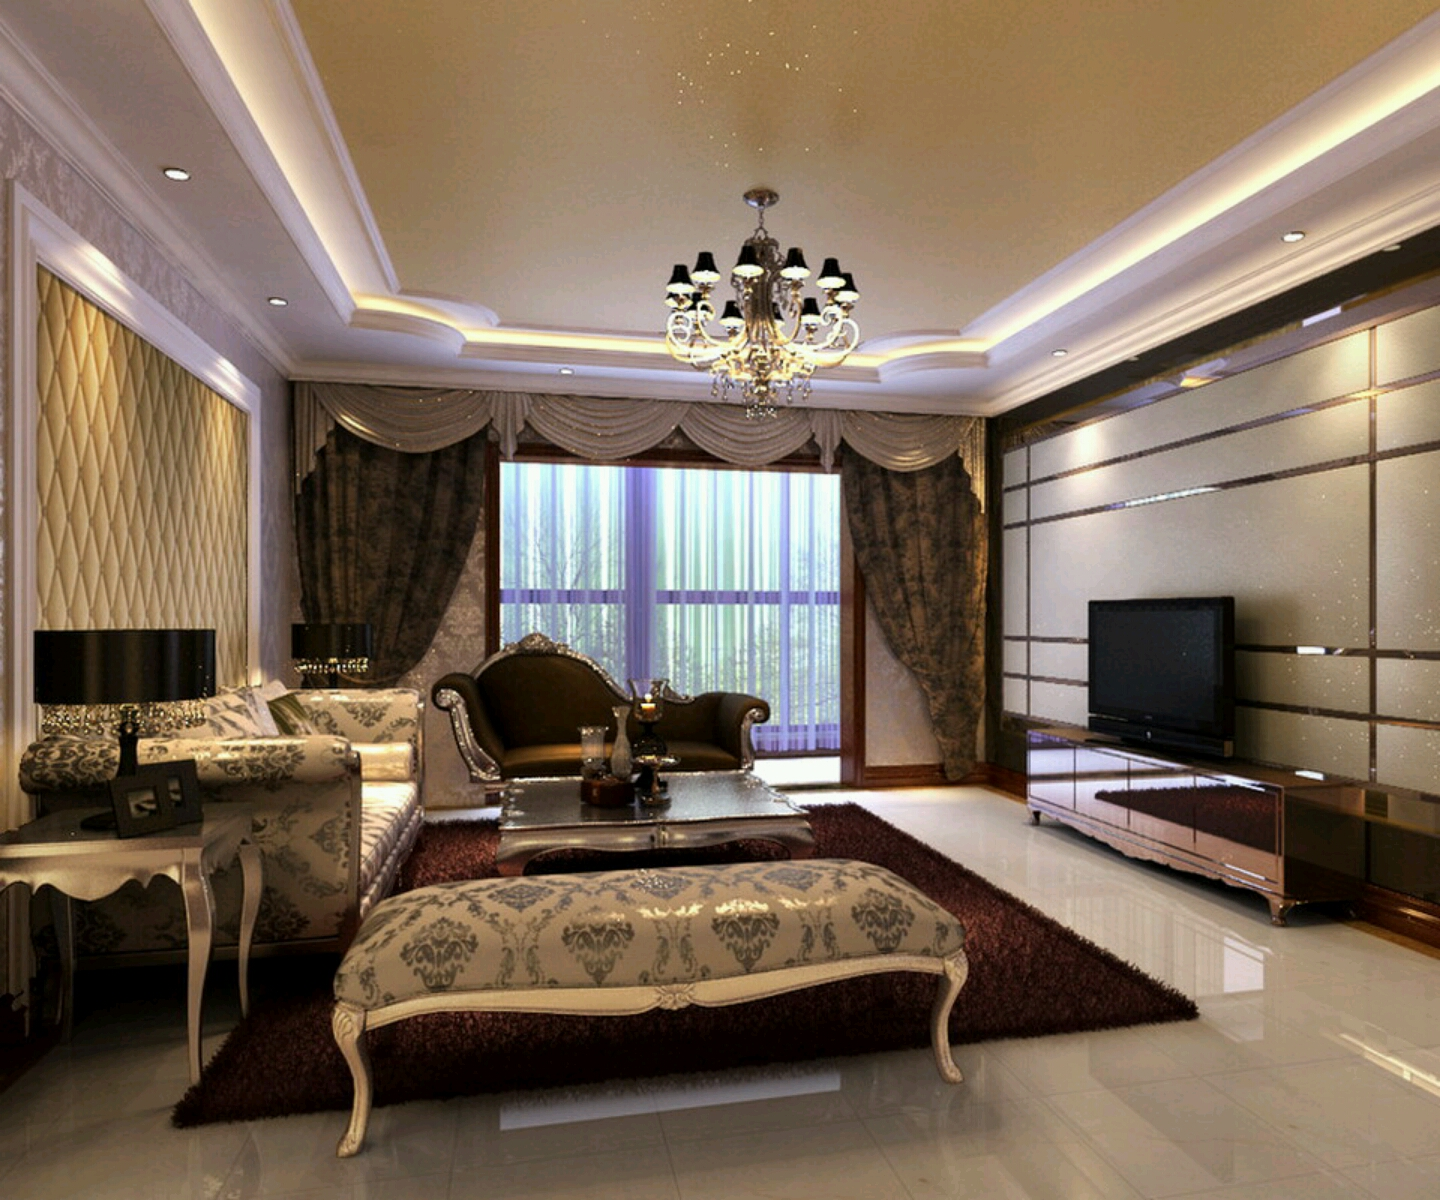 Interior Decorating Ideas Living Rooms Dream House Interior Decorating Ideas  For Living Room